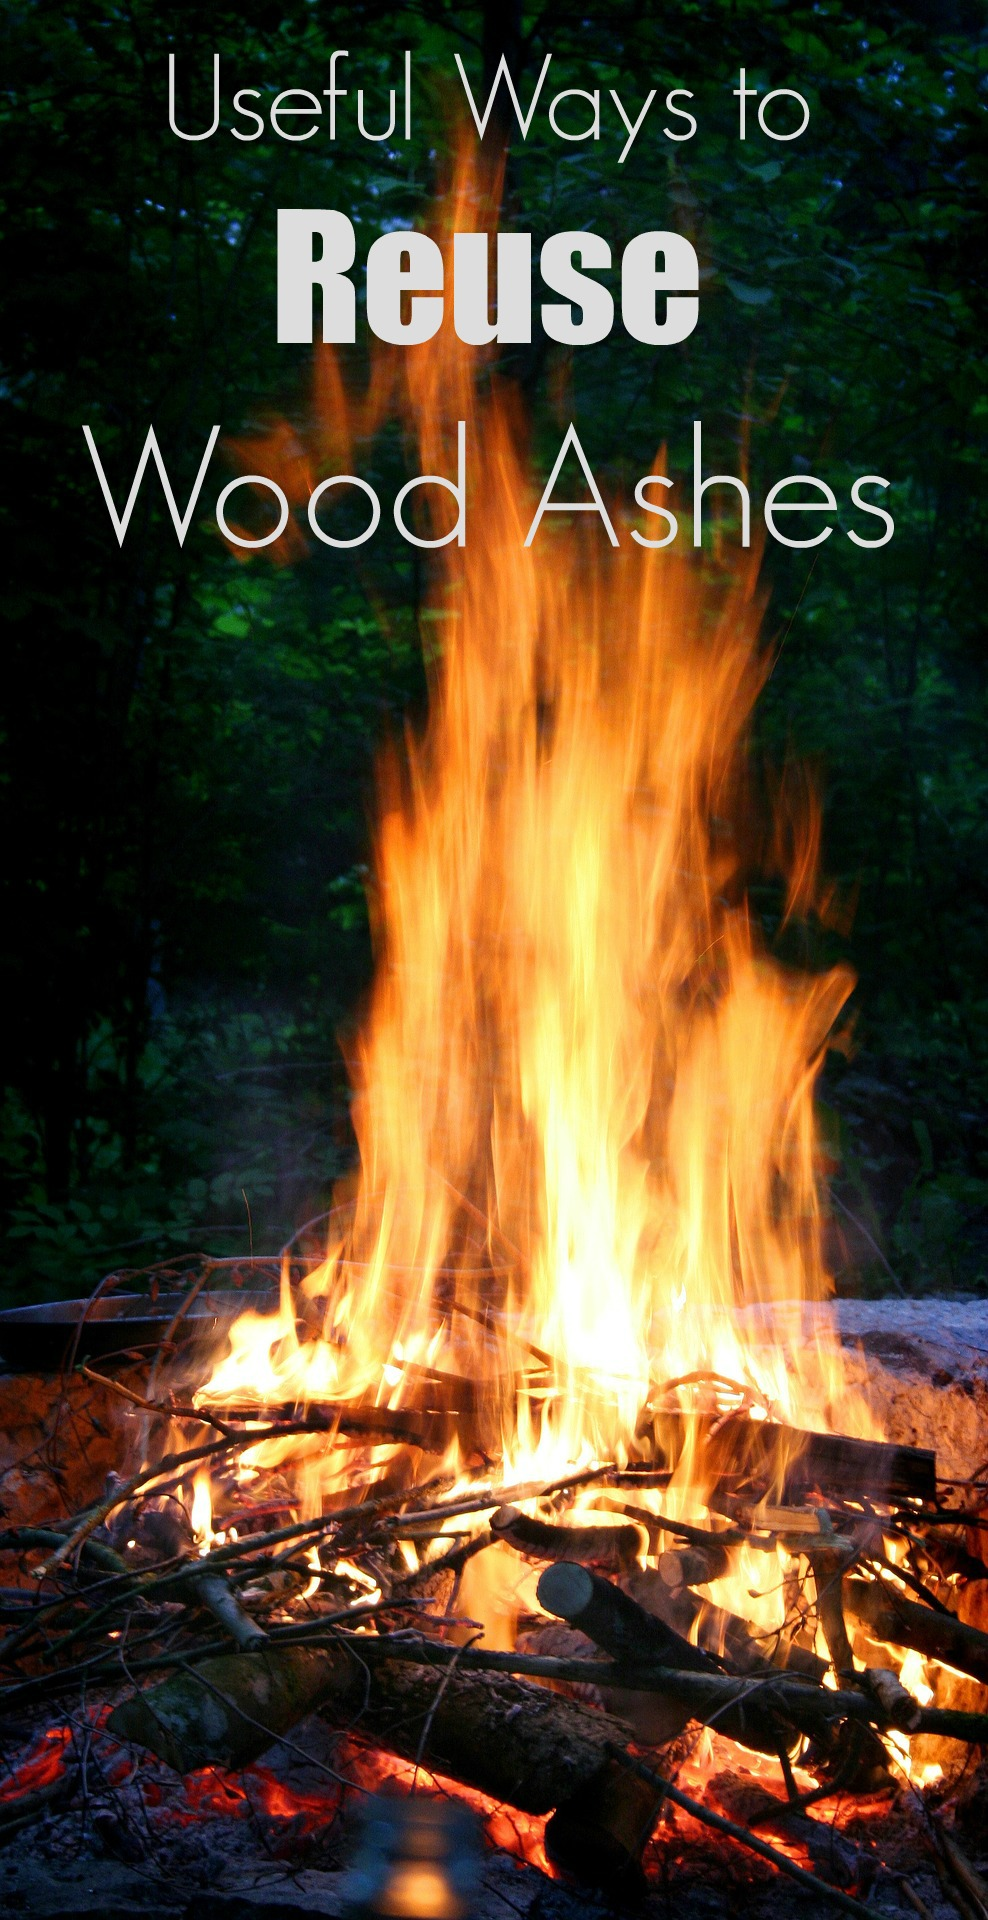 10 uses for wood ash after the campfire is over turning the